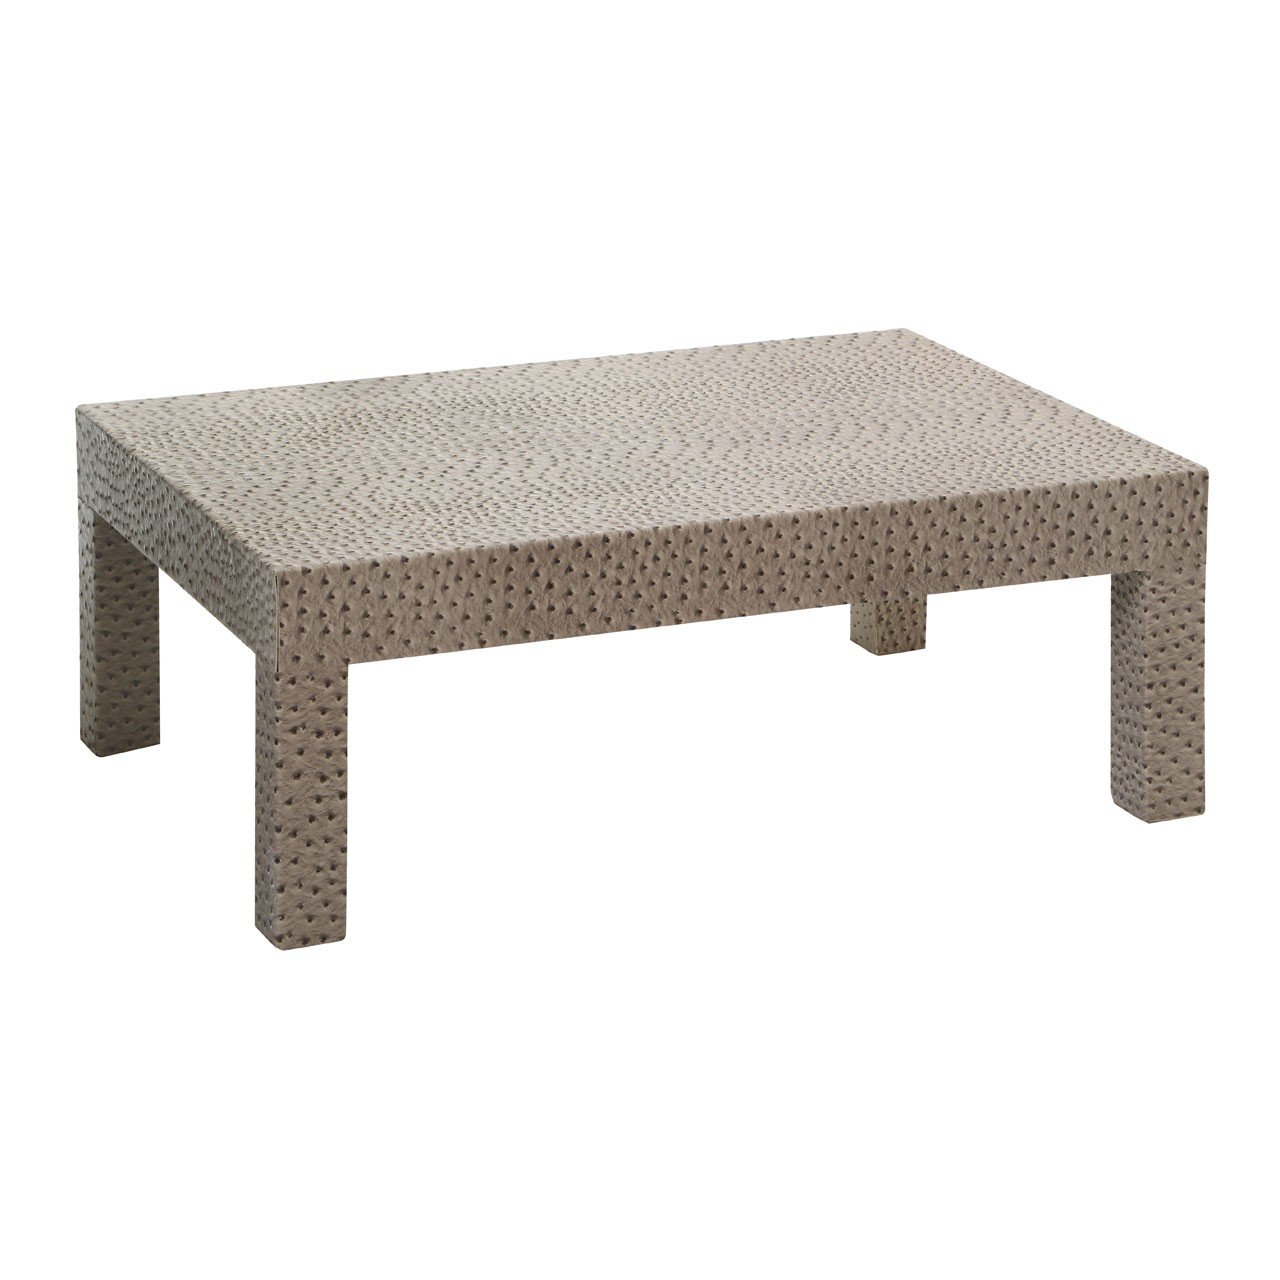 Coffee Table MDF/Ostrich Leather Effect (PU) Fully Assembled